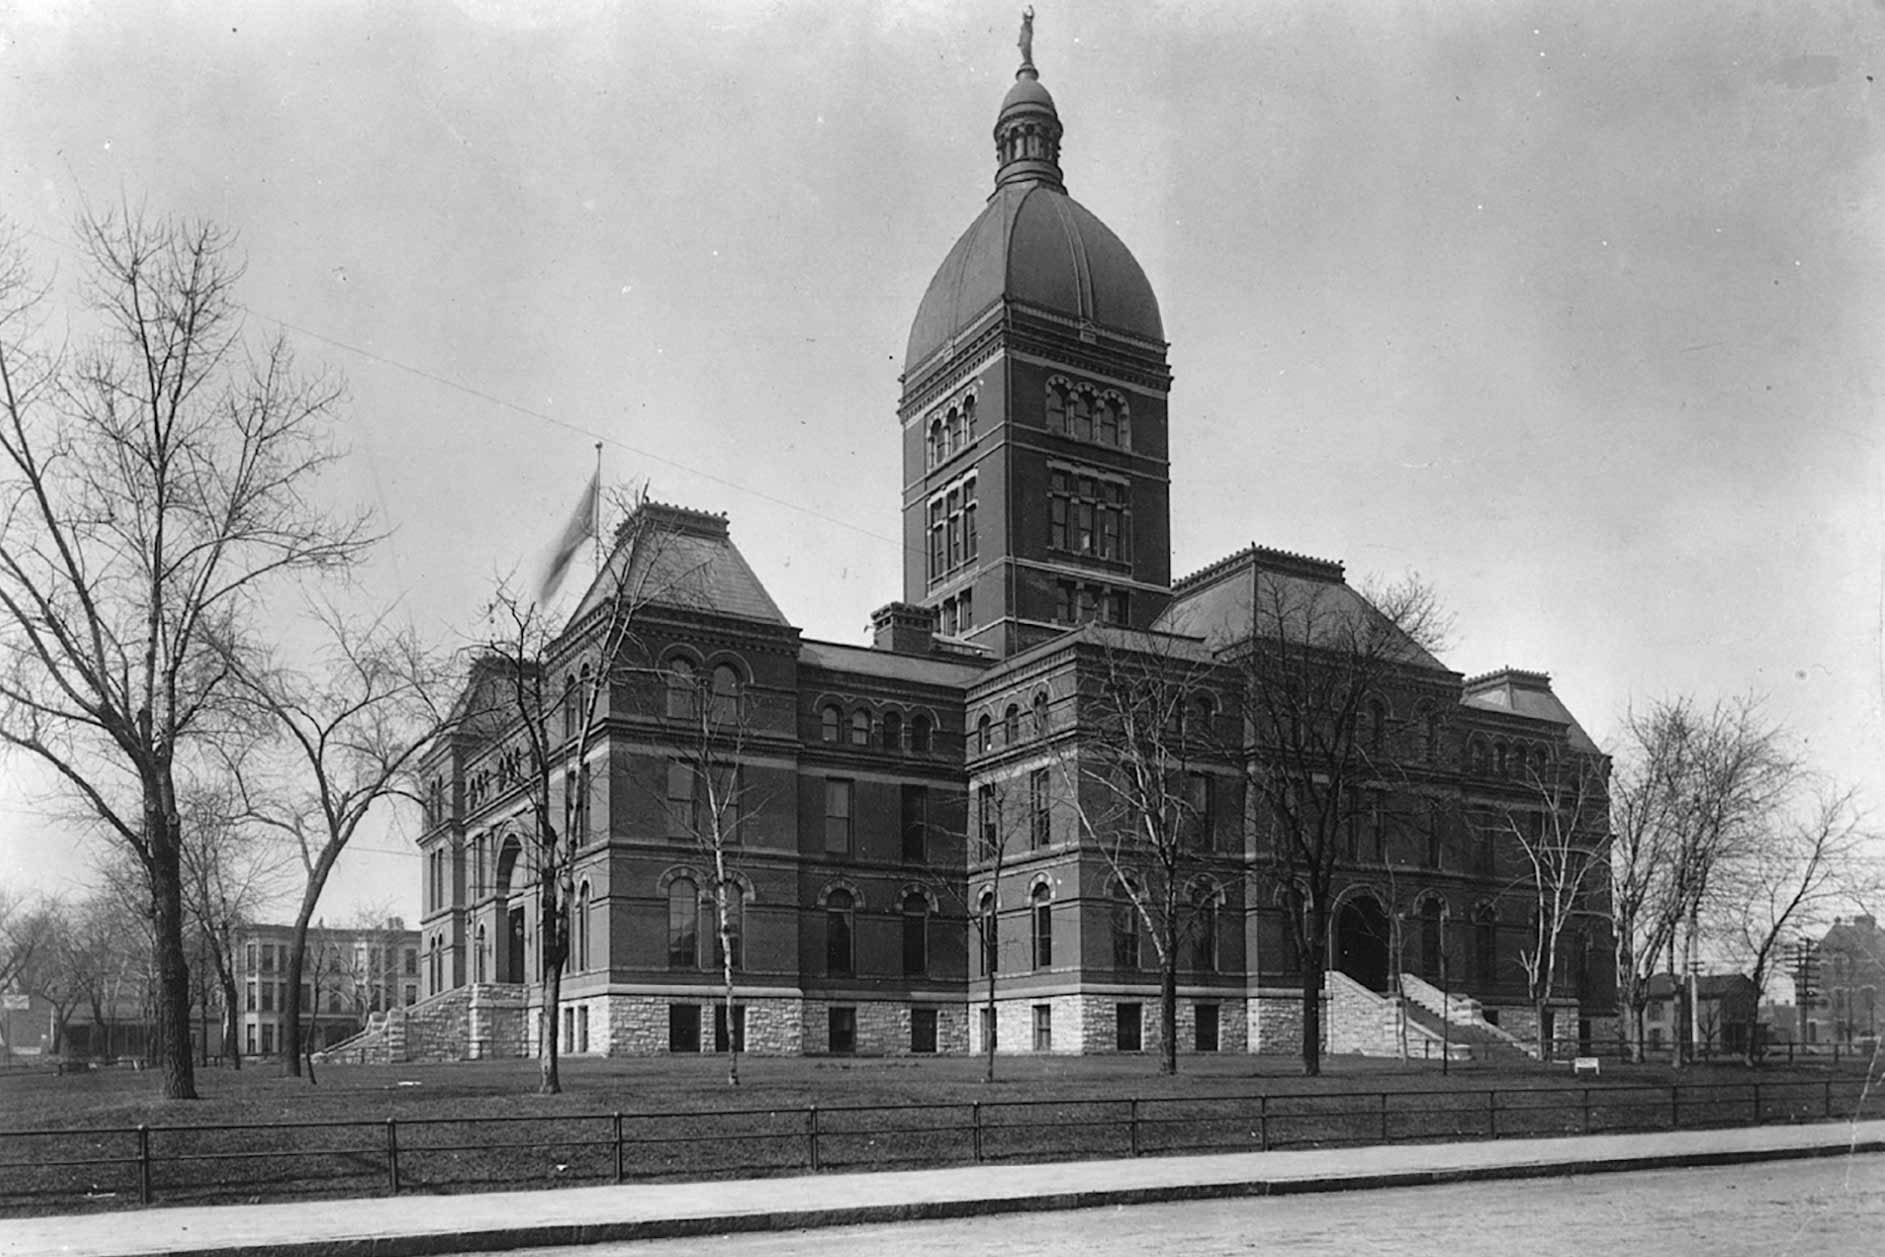 1883 Minnesota State Capitol building